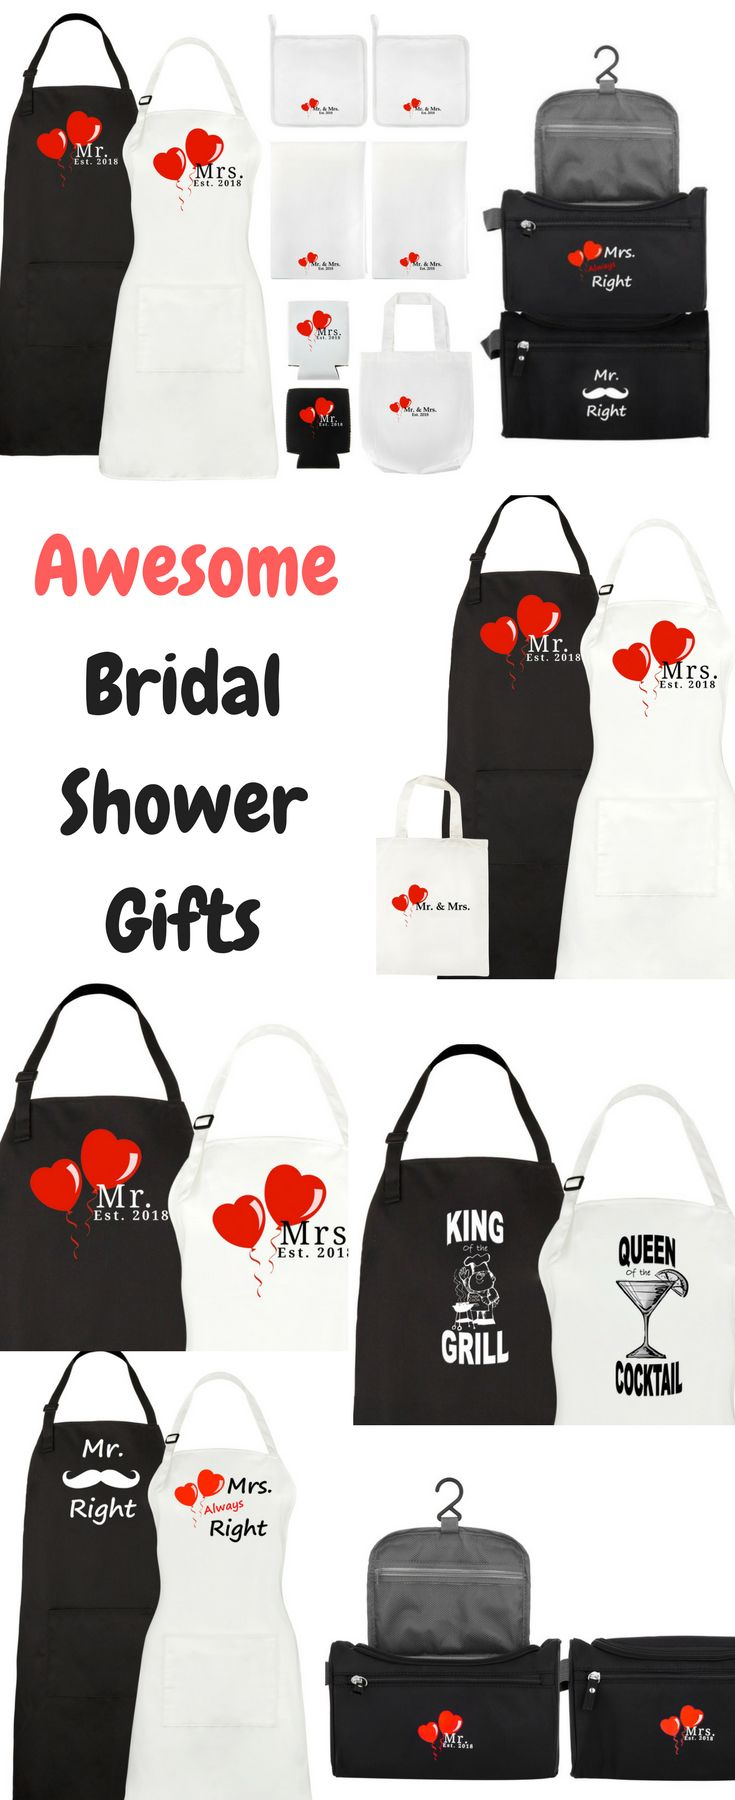 Wonderful Bridal Shower and Wedding Gift Ideas.  Mr and Mrs Est 2018 Travel Bags and Apron Sets make thoughtful and original wedding or engagement gifts.  Also, the couples apron sets are wonderful as part of a kitchen themed gift basket.  Gifts the bride and groom can enjoy together for many years to come!    Check it out:  www.mapleoriginals.com